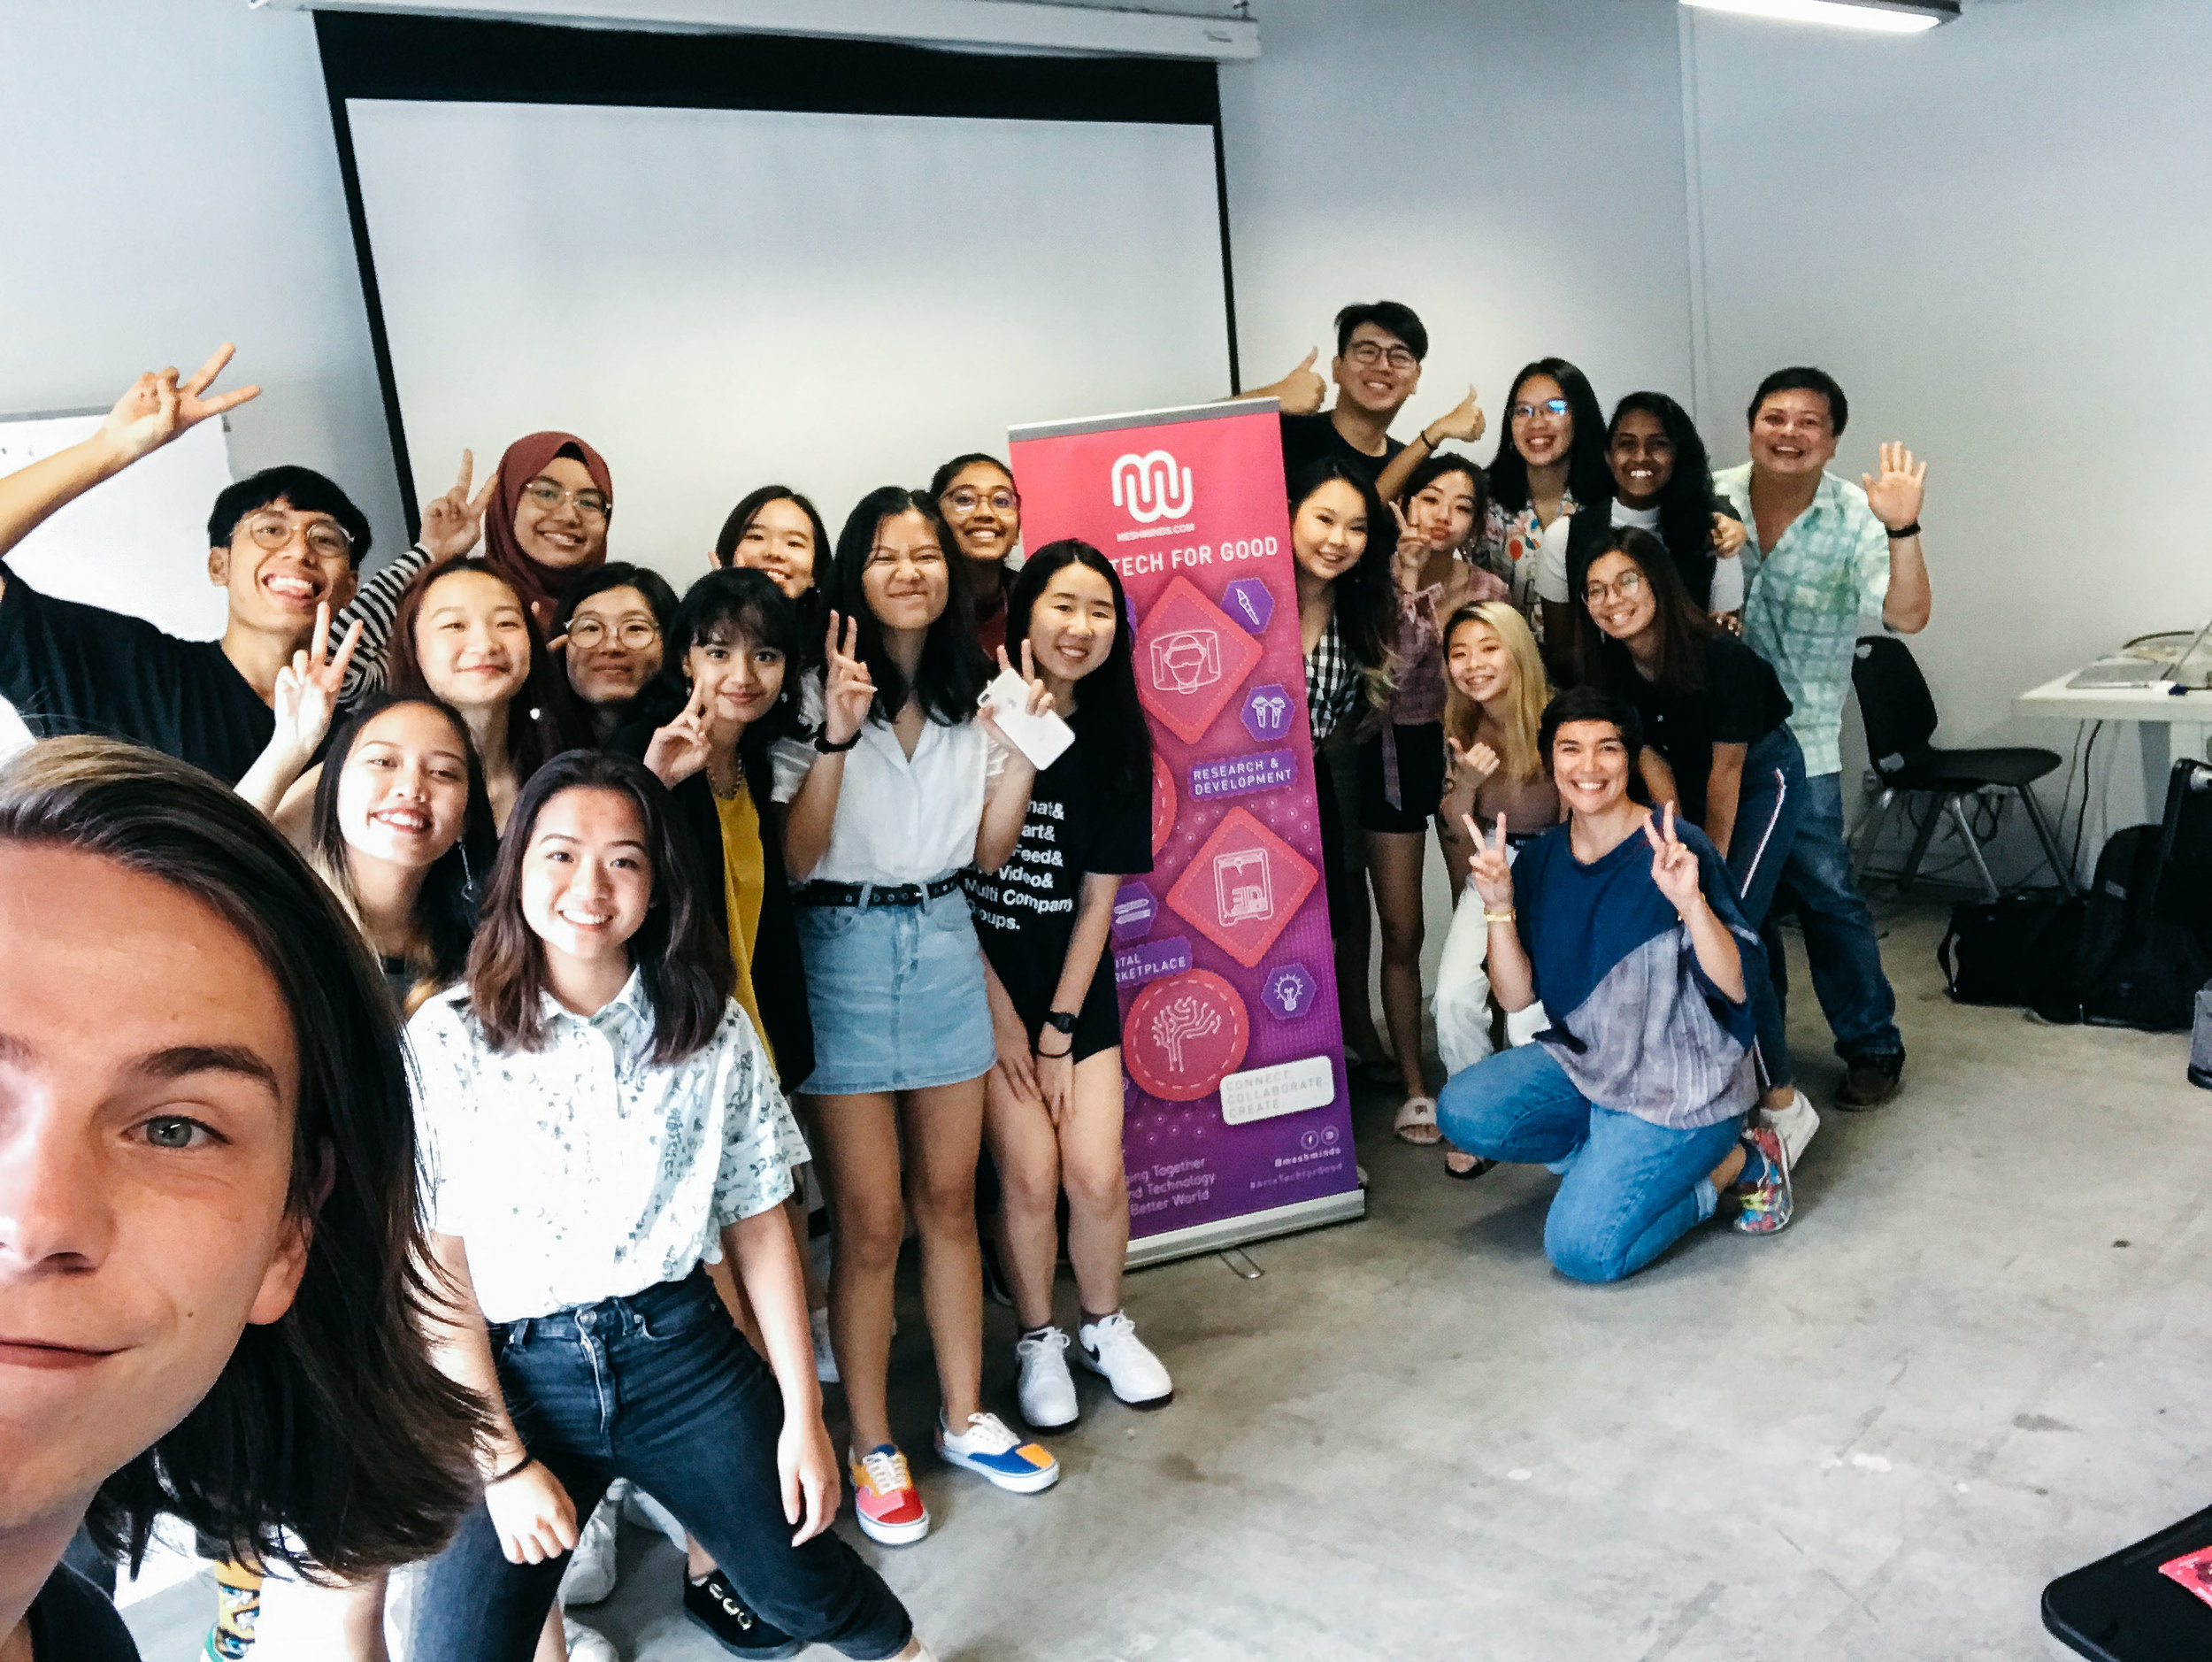 29 May 2019 - MeshMinds with Art Business Management students from Ngee Ann Polytechnic.